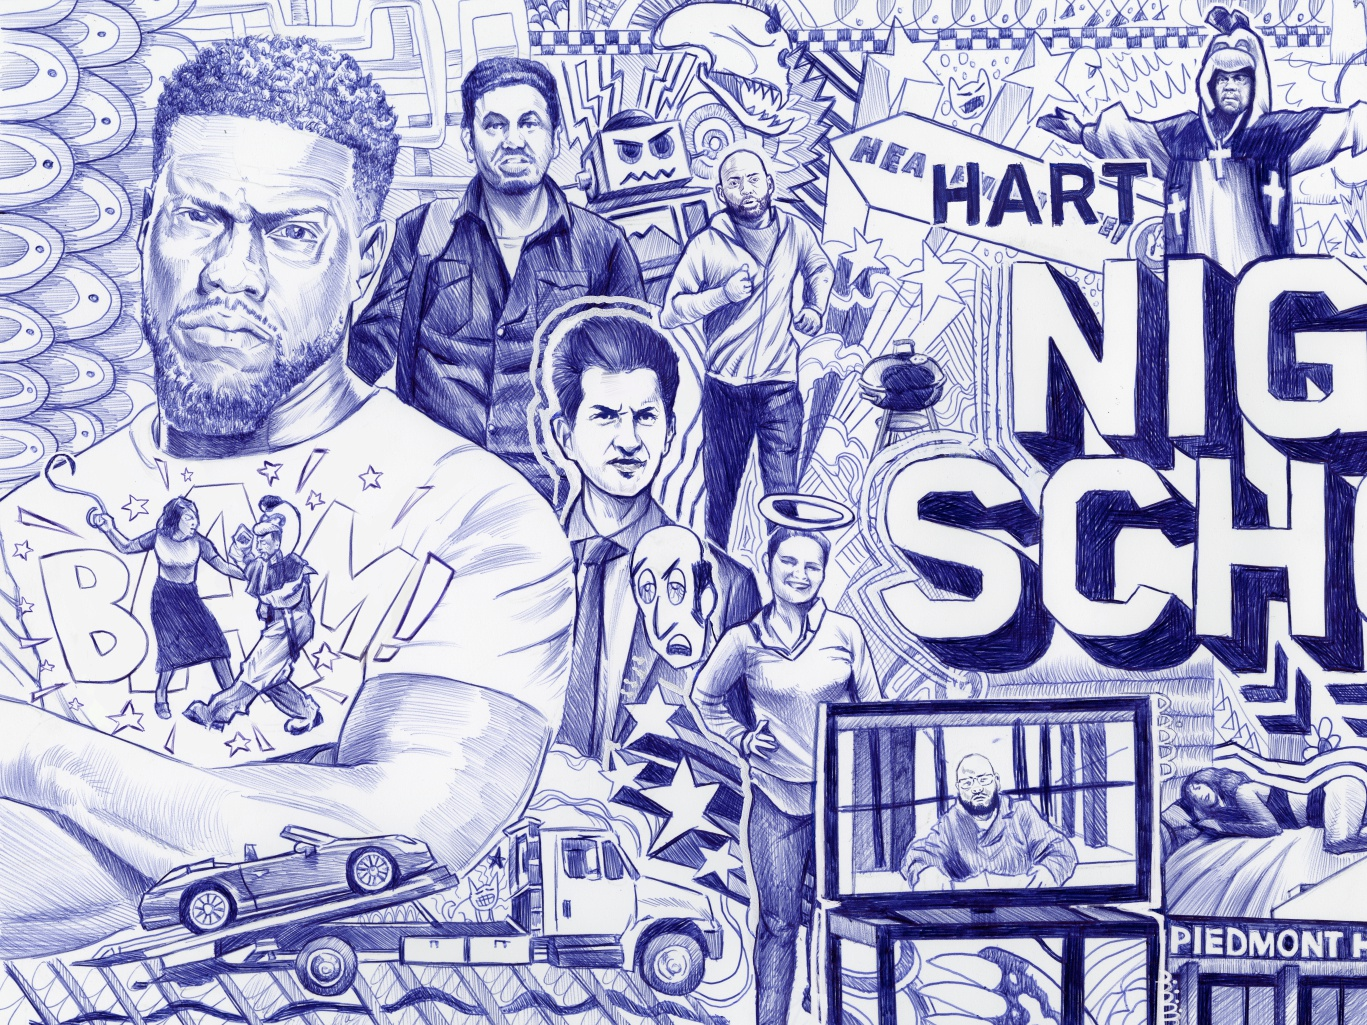 Night School 2 jack gregory jack c. gregory bic pen pen and ink illustration posting out of home ooh promo kevin hart night school